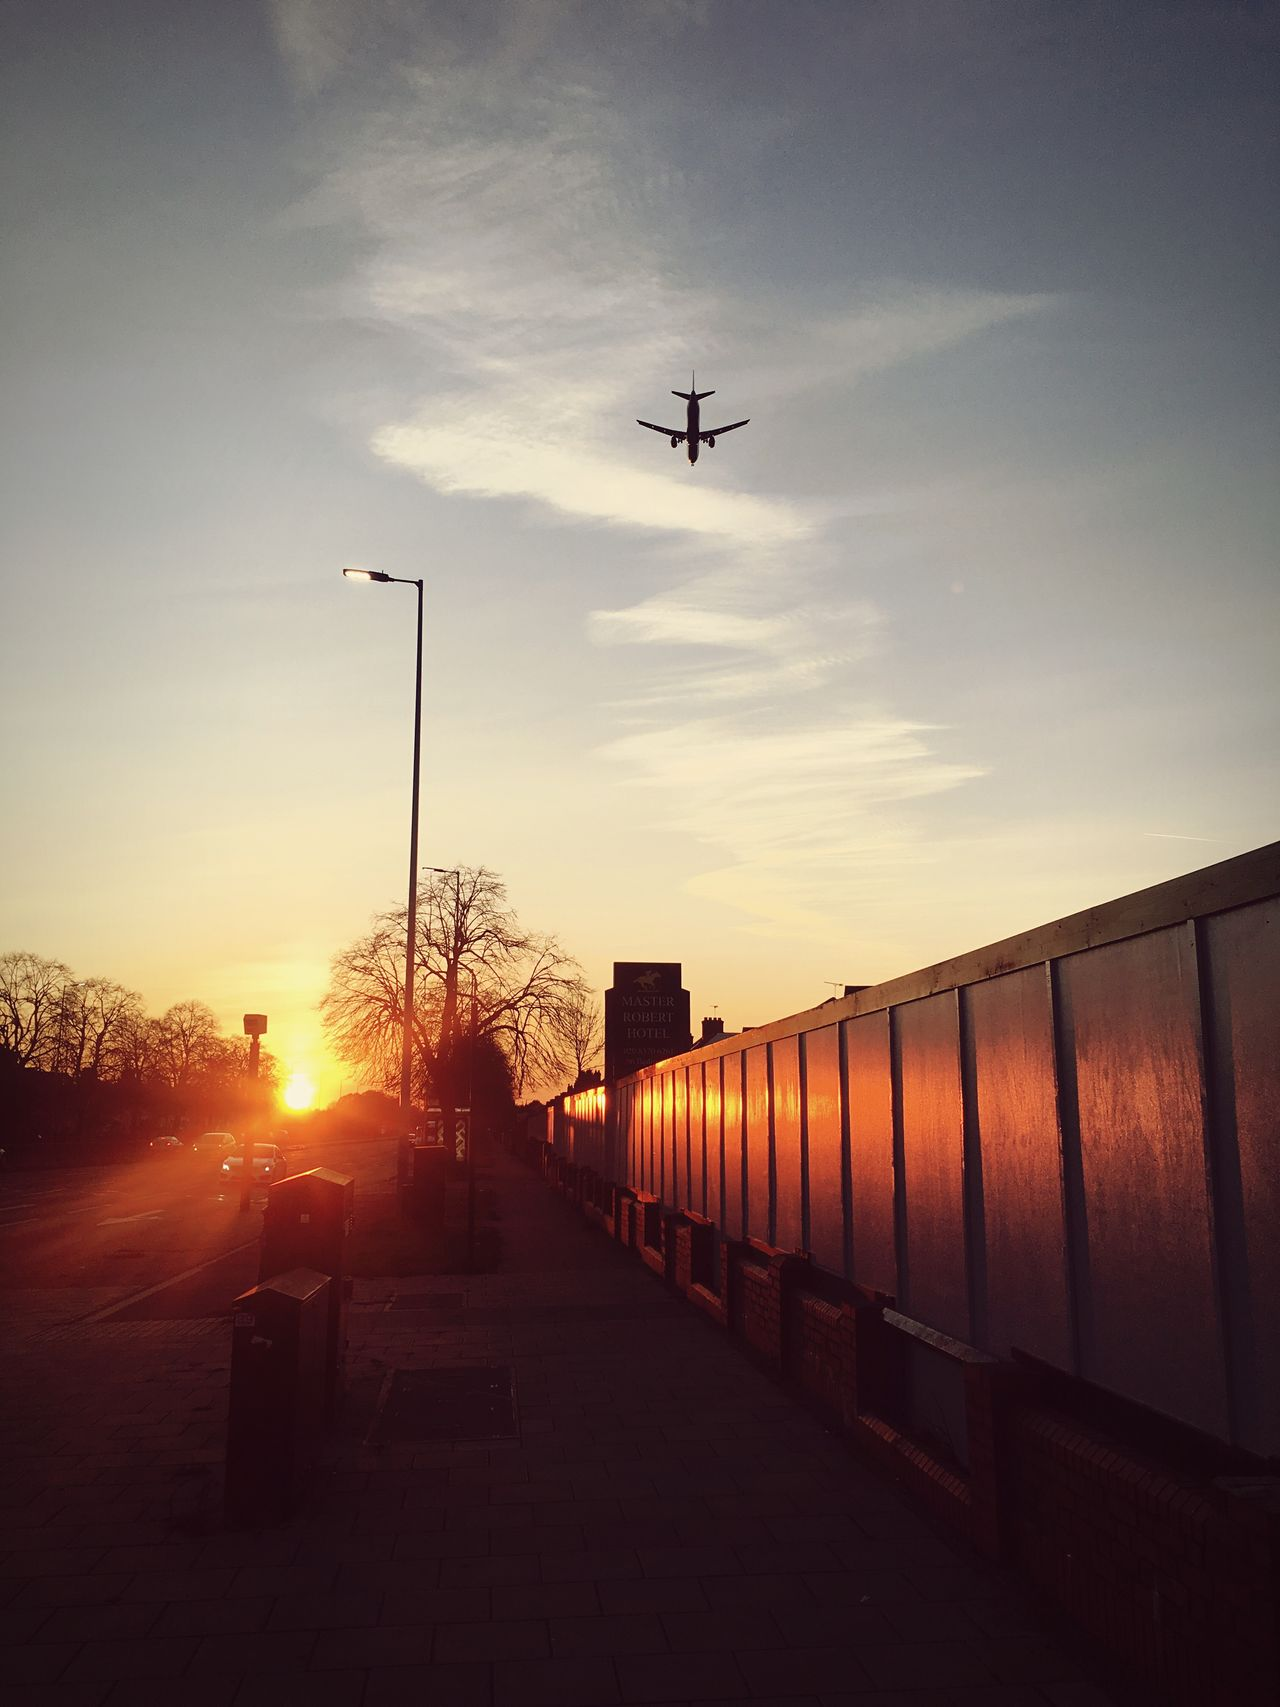 Sunset Transportation Flying Airplane Sky Mode Of Transport Air Vehicle No People Outdoors Building Exterior Sun Nature Architecture Day Fresh On Eyeem  EyeEm Best Shots - The Streets Urban Exploration Streetphotography Silhouette The Week Of Eyeem EyeEm Best Shots